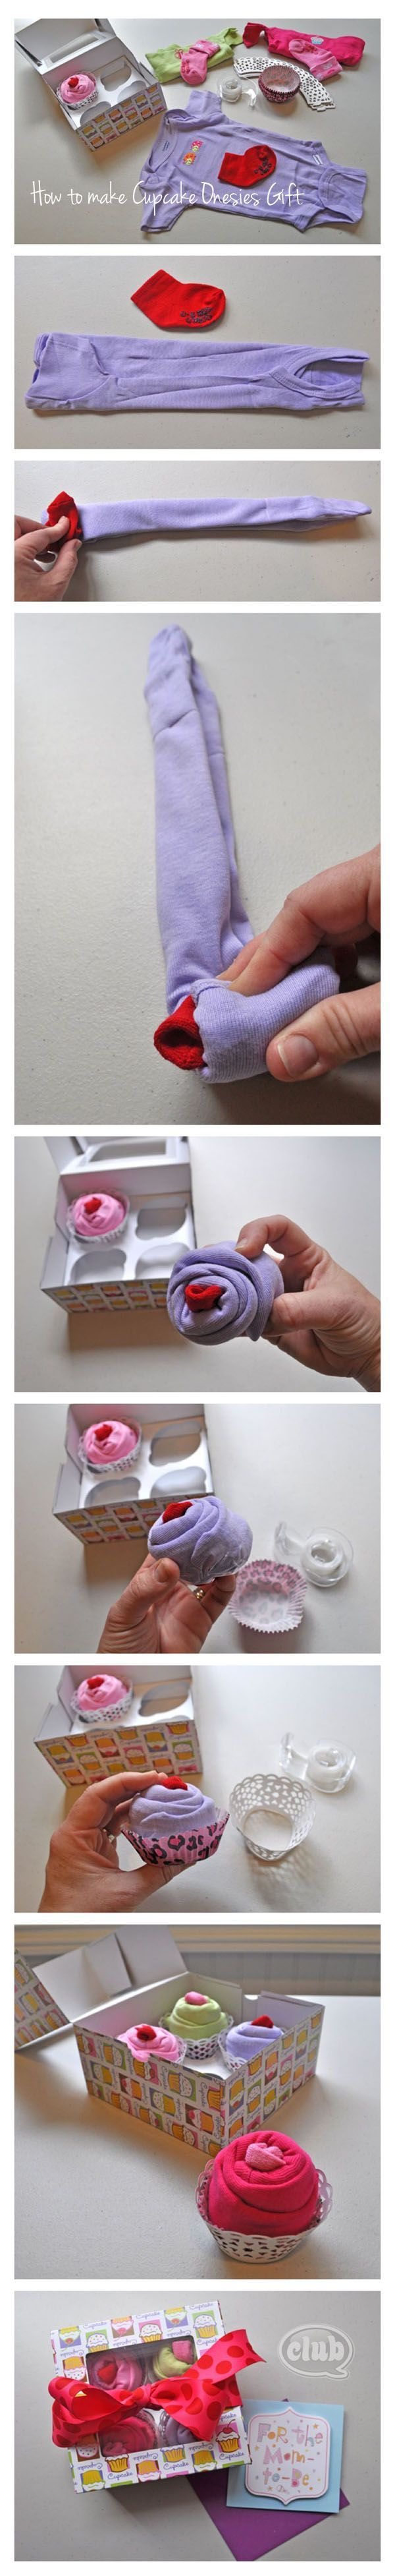 cupcake baby gift steps -- too cute!